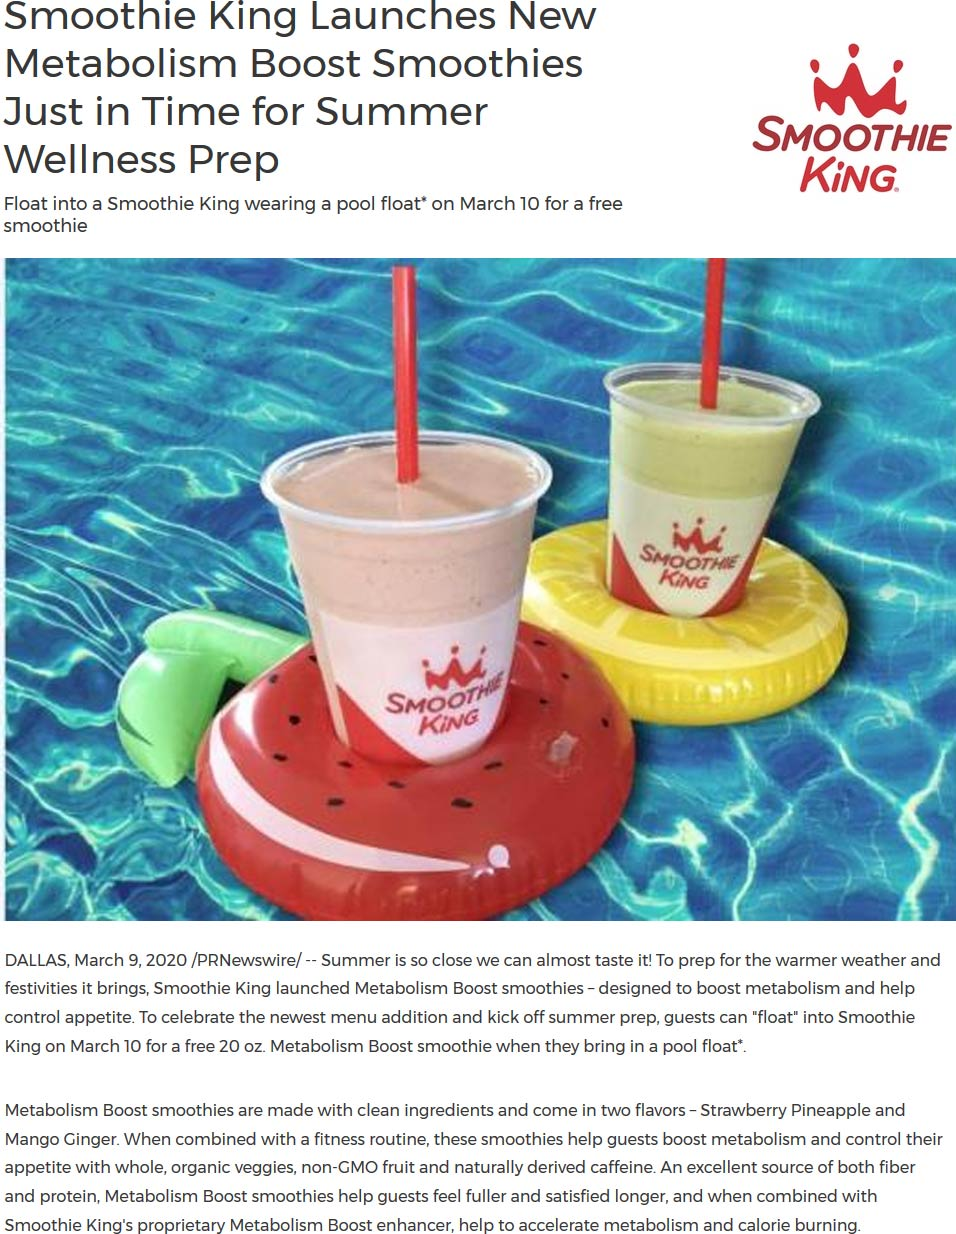 Smoothie King coupons & promo code for [January 2021]